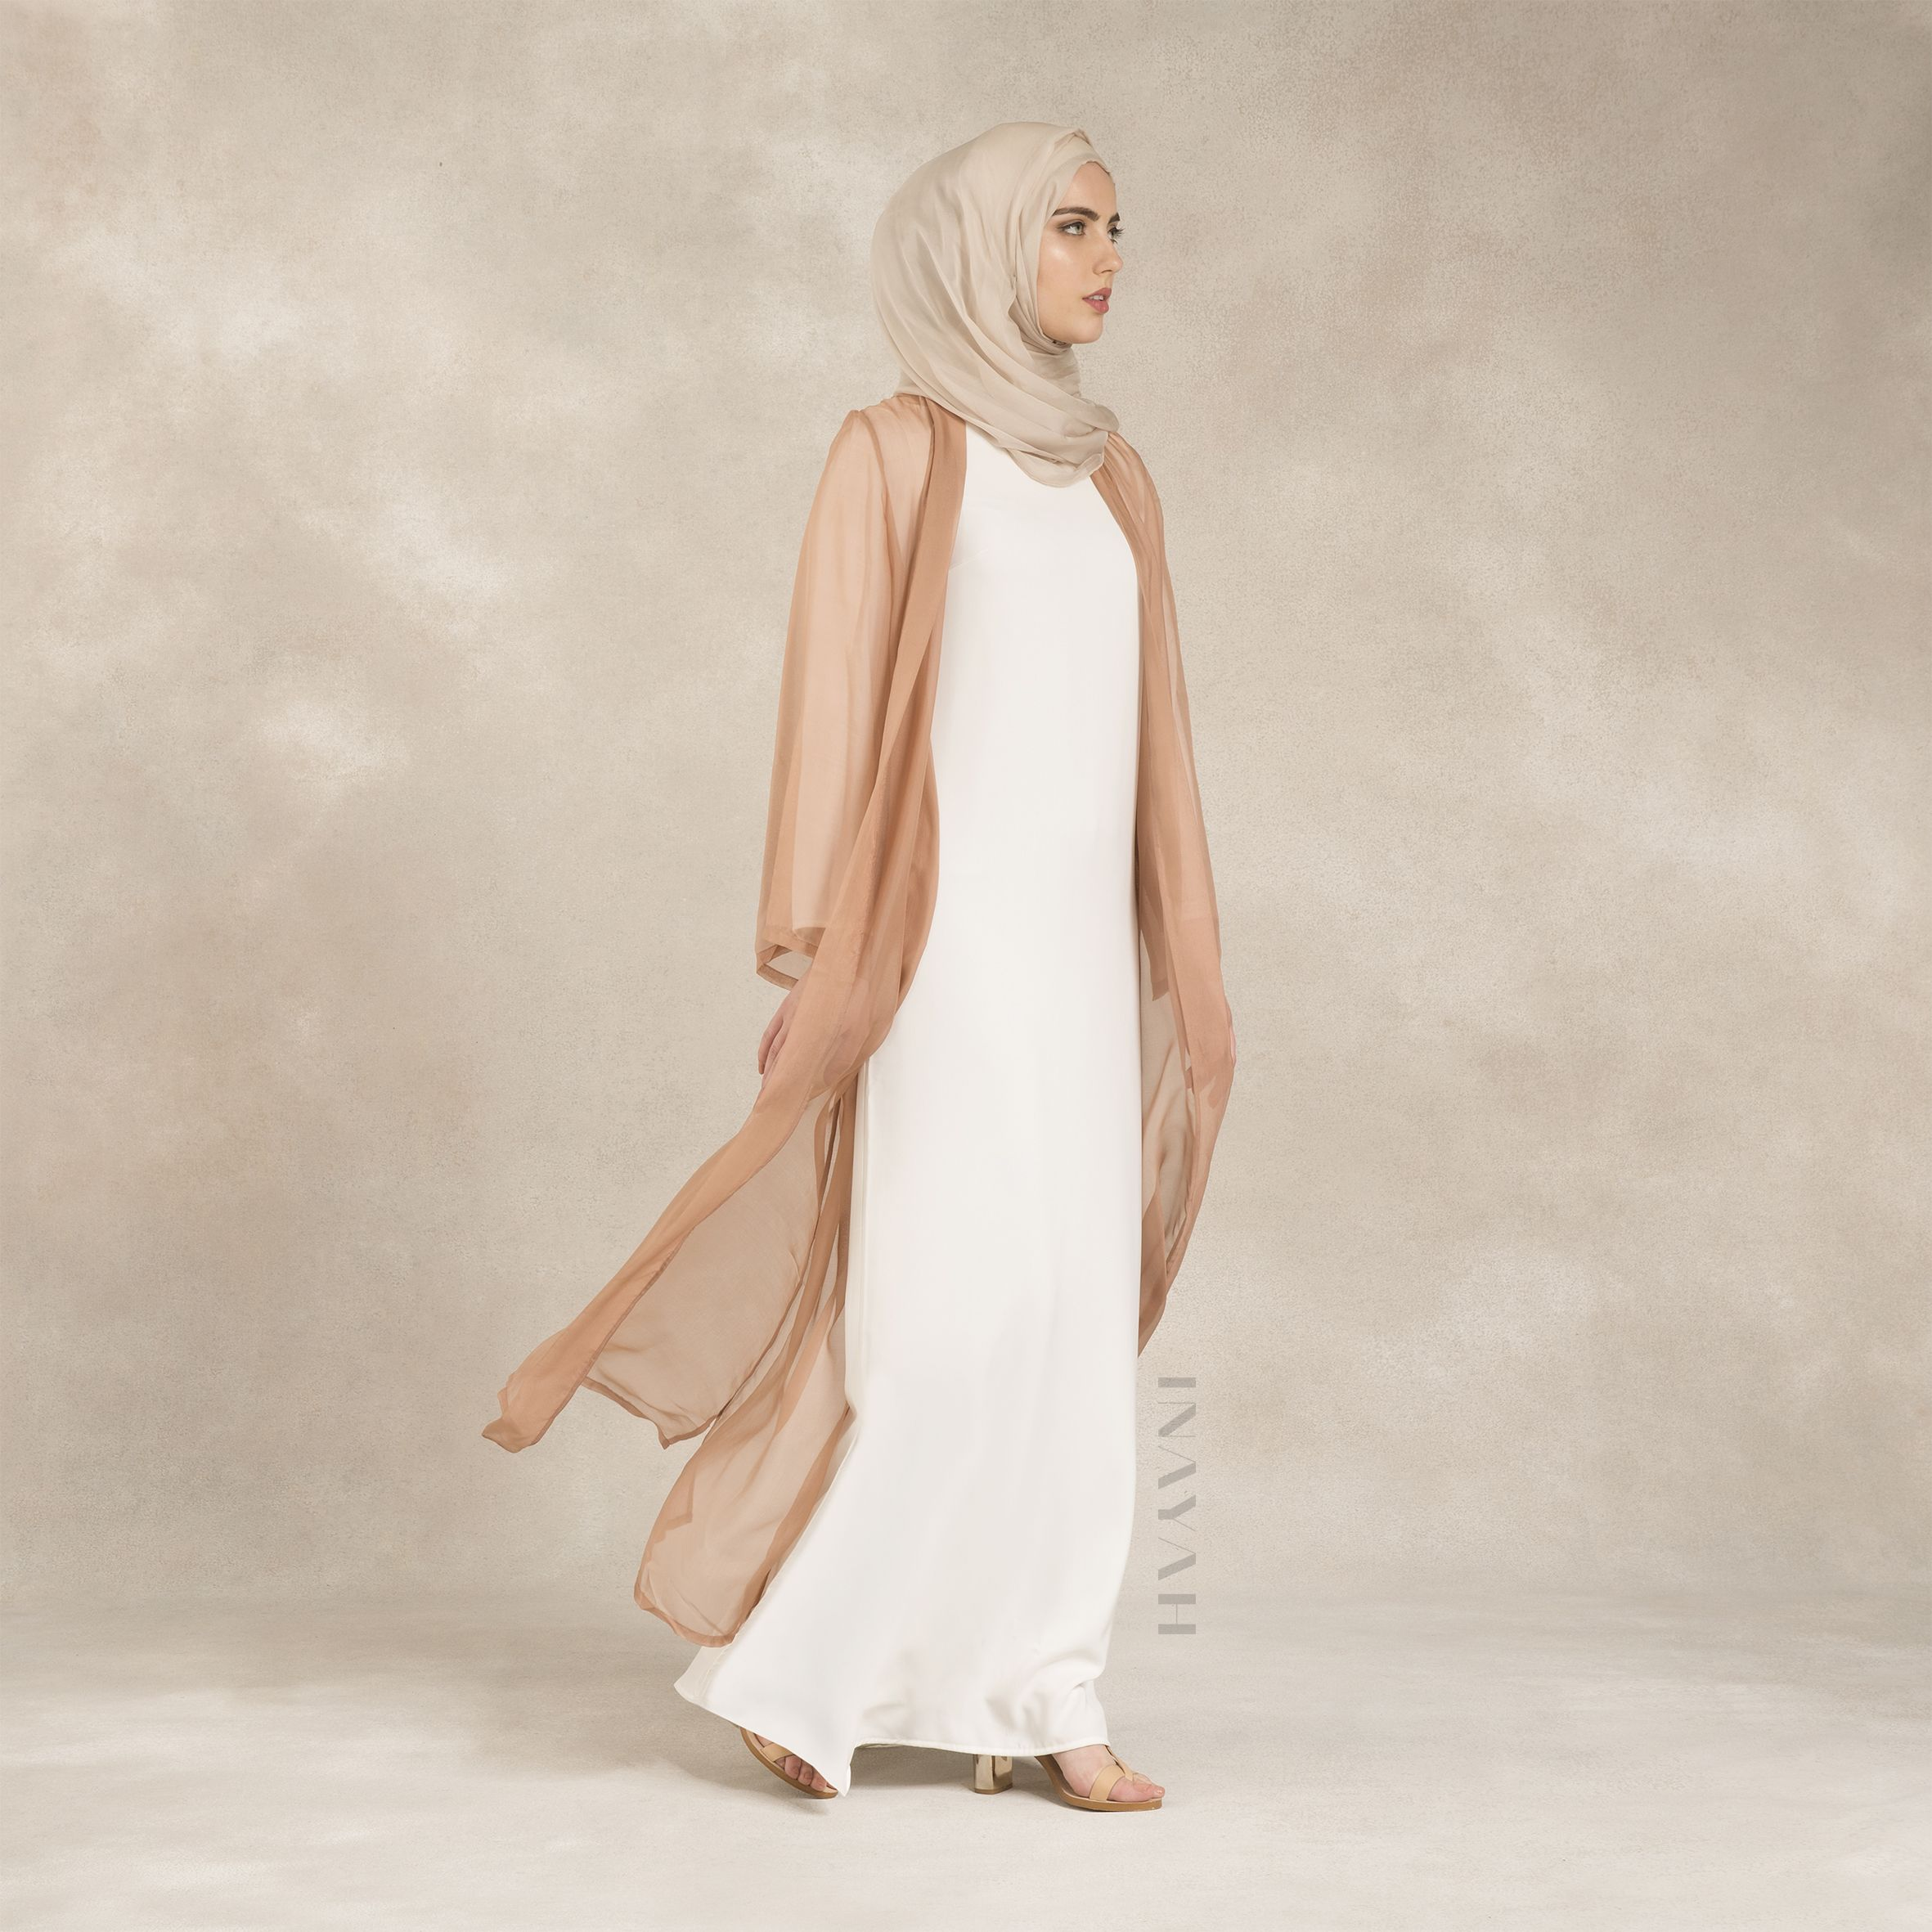 INAYAH | Pure Silk Blush #Kimono + White Long Crepe #Dress #inayahclothing #modeststyle #modesty #modestfashion #hijabfashion #hijabi #hijabifashion #covered #Hijab #jacket #midi #dress #dresses #islamicfashion #modestfashion #modesty #modeststreestfashion #hijabfashion #modeststreetstyle #modestclothing #modestwear #ootd #cardigan #springfashion #INAYAH #covereddresses #scarves #hijab #style